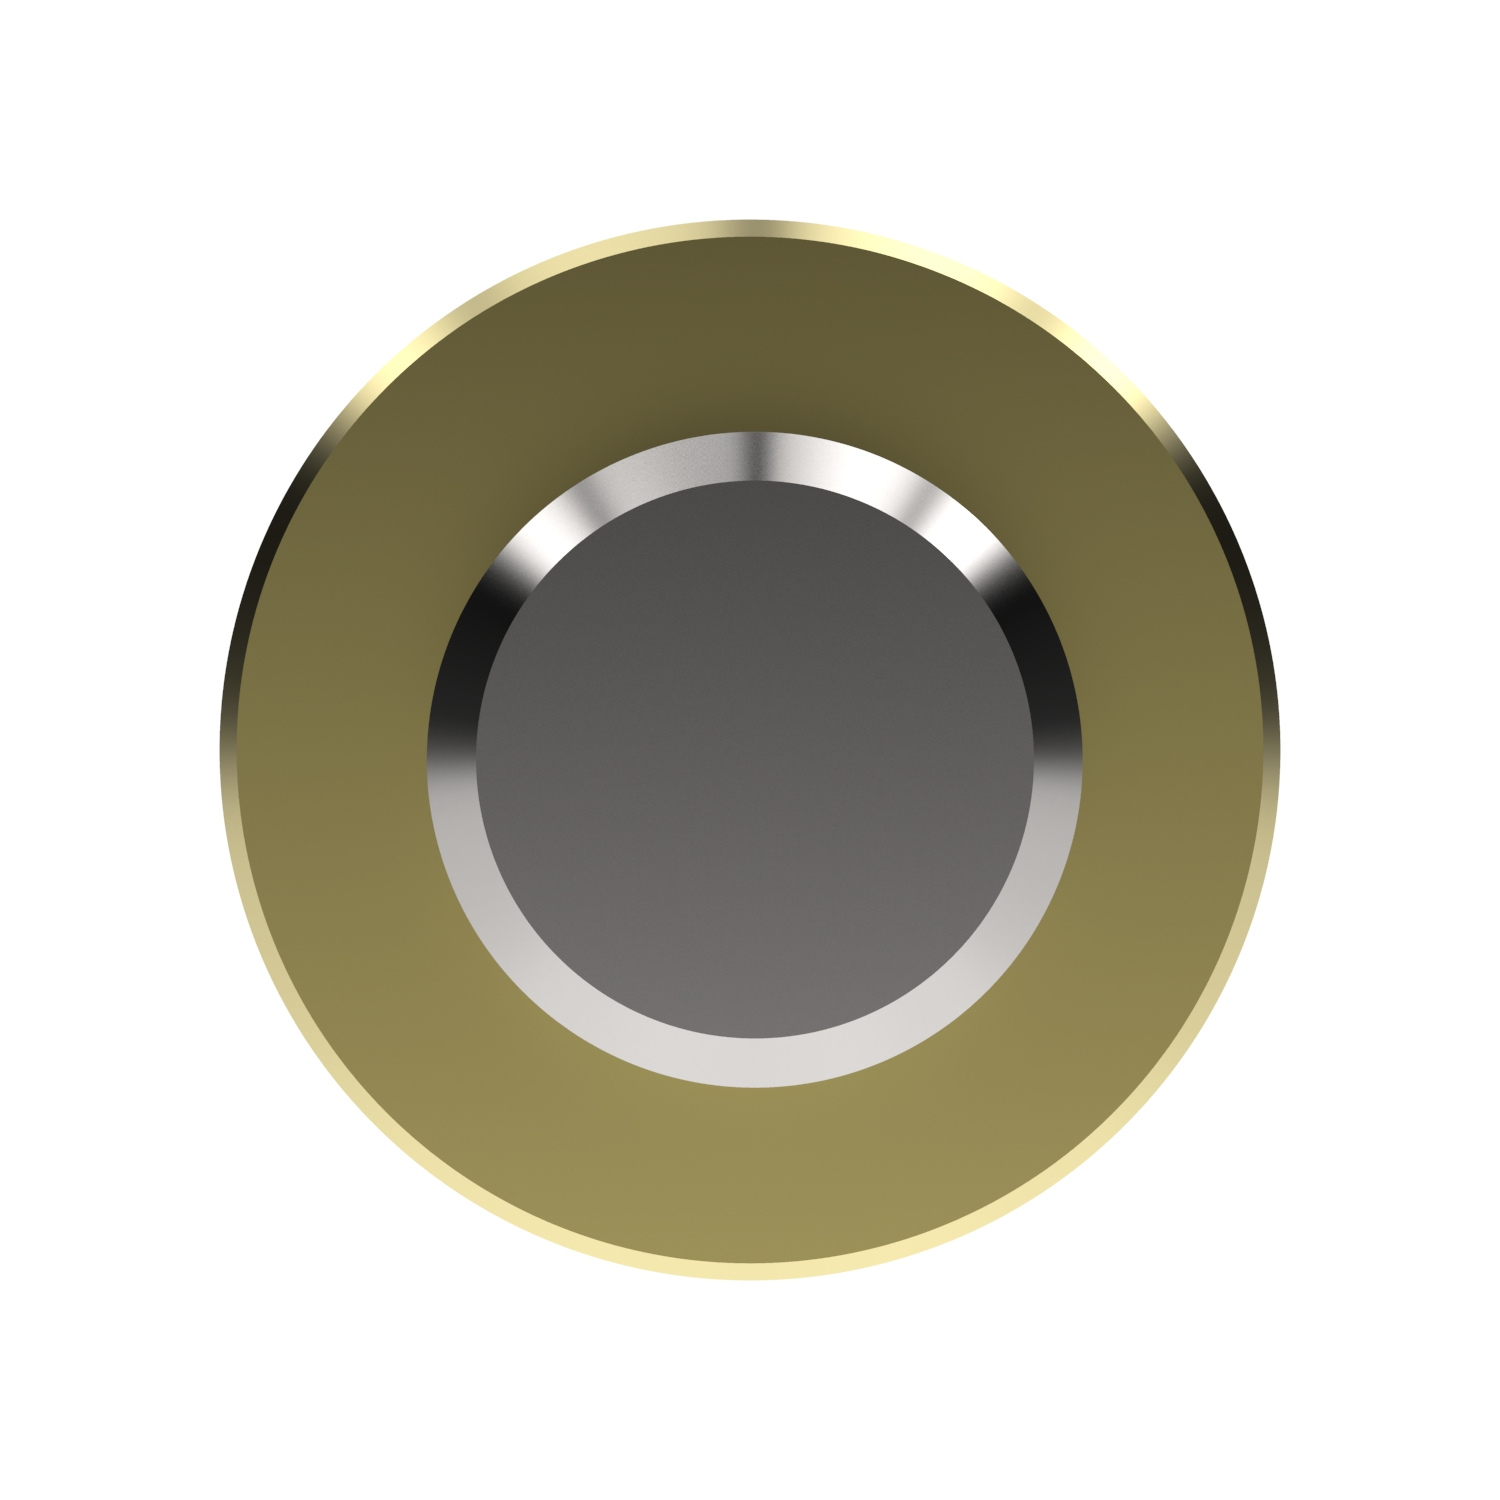 "Acme Sleeve Nut - Bronze -1/2""- .250"" RH"